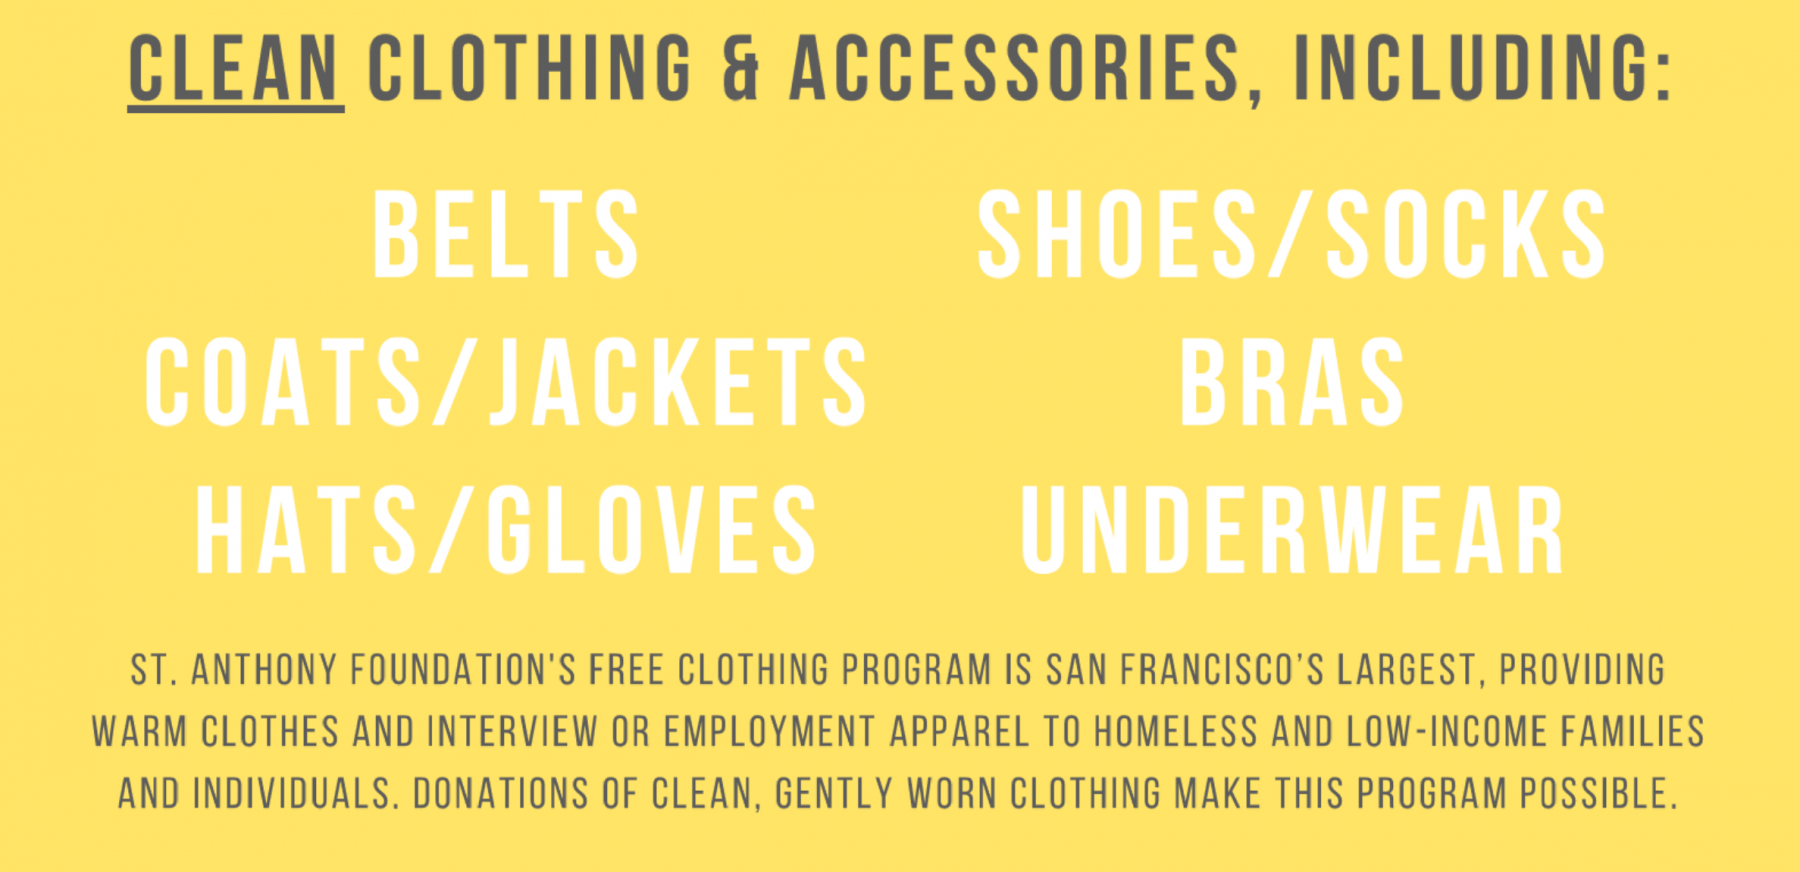 "Text that states ""Clean clothing and accessories, including: belts, coats/jackets, hats/gloves, shoes/socks, bras, underwear. St. Anthony Foundation's free clothing program is San Francisco's largest, providing warm clothes and interview or employment apparel to homeless and low income families and individuals, donations of clean, gently worn clothing make this program possible."""